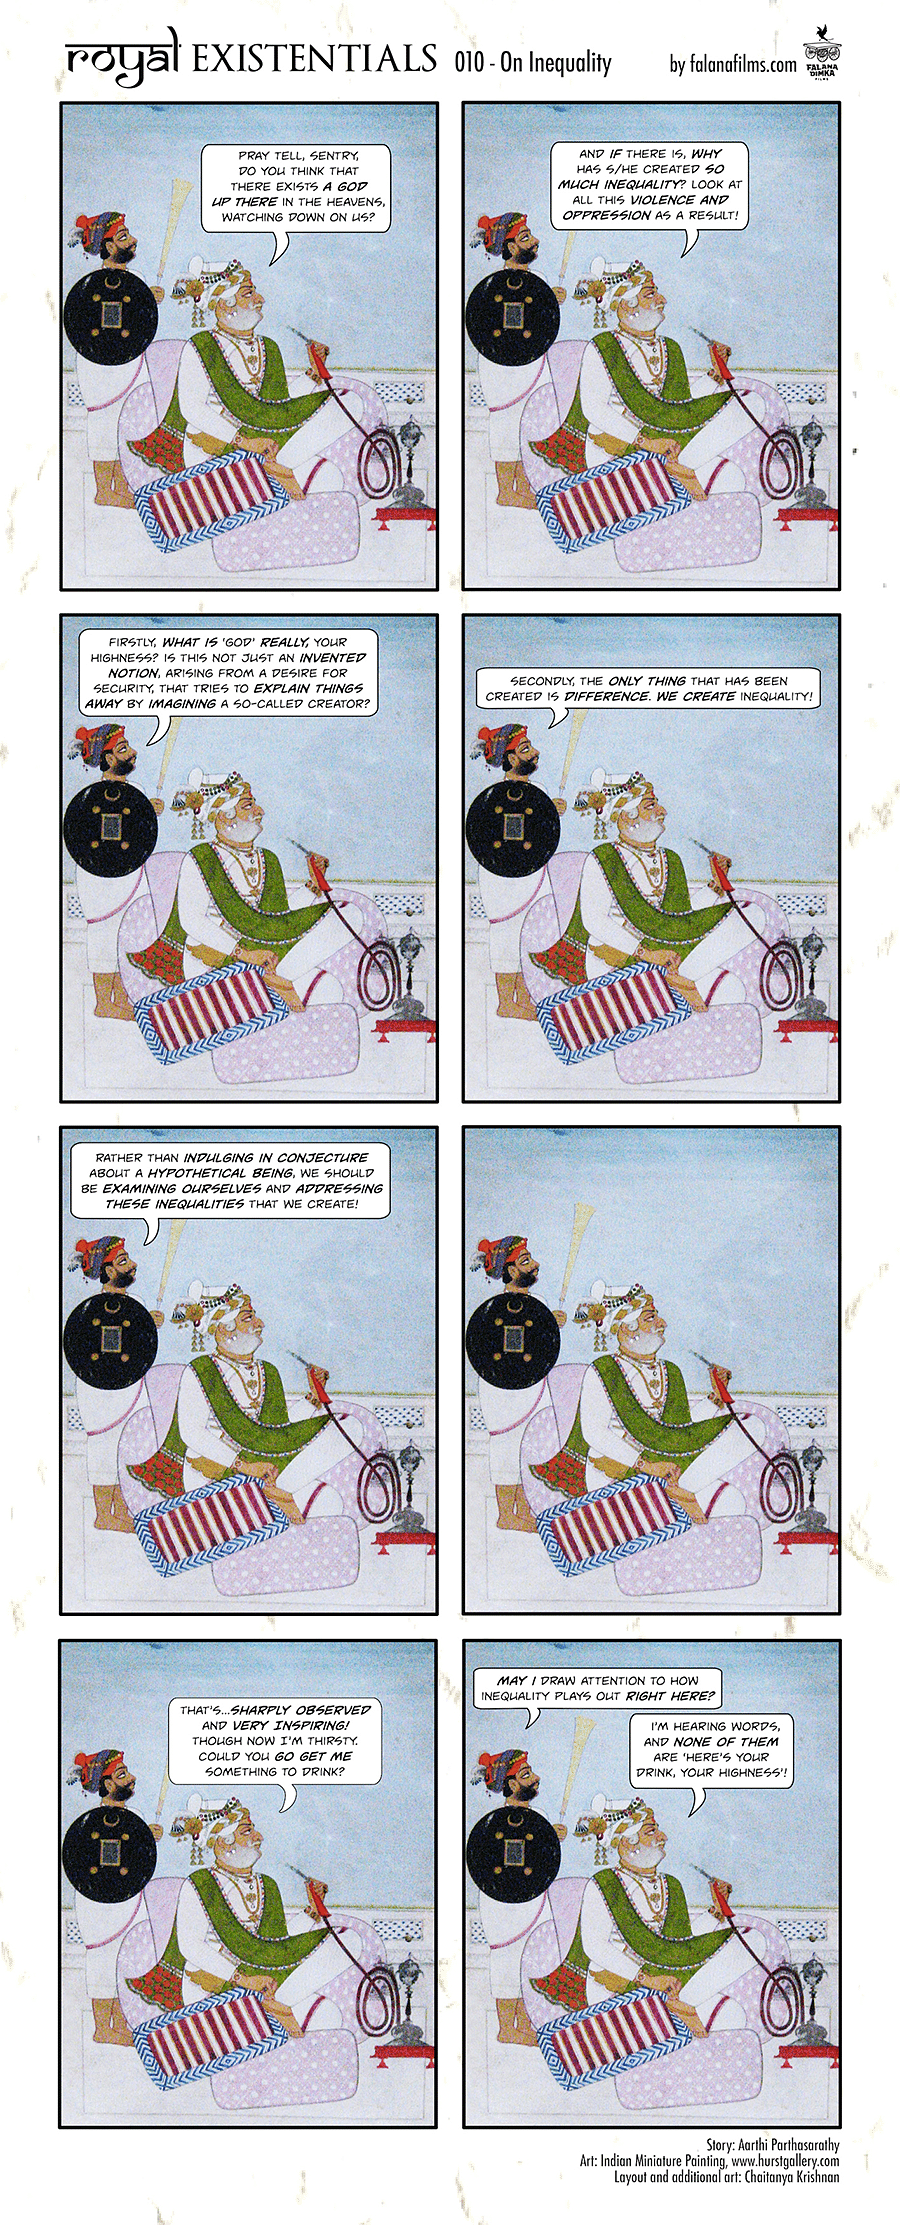 Royal existentialists